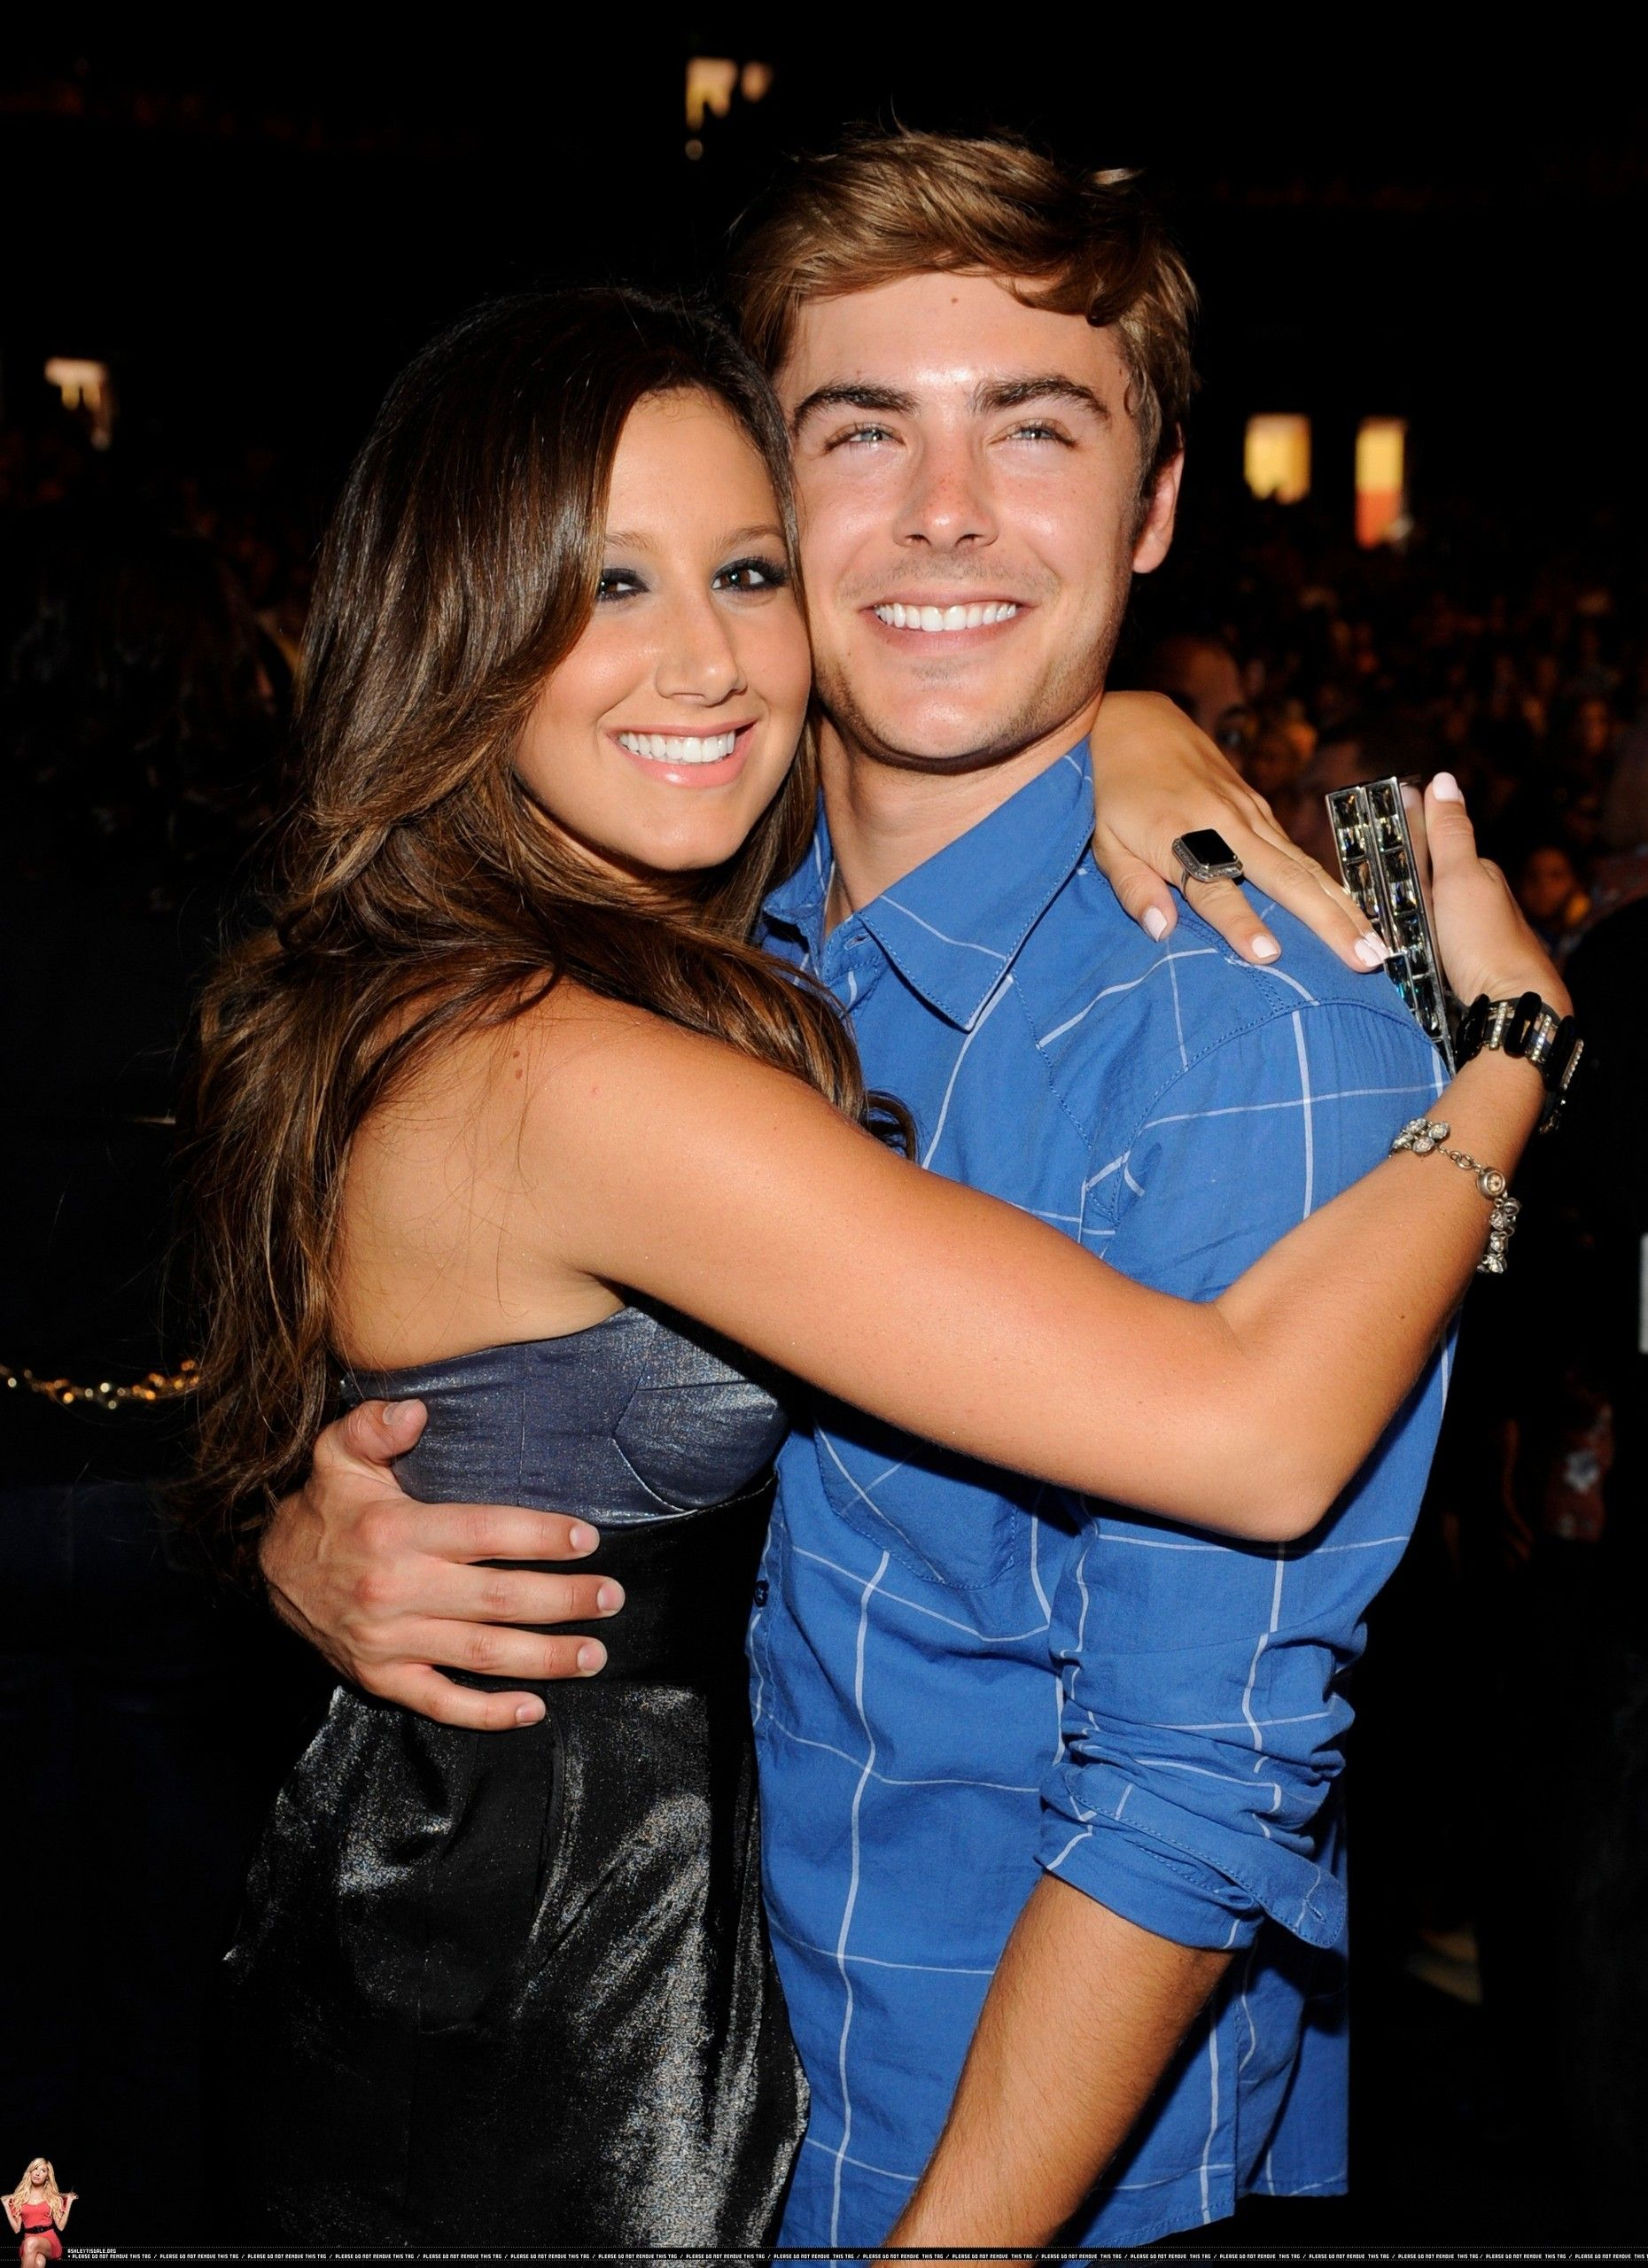 Are ashley tisdale and zac efron dating 2019